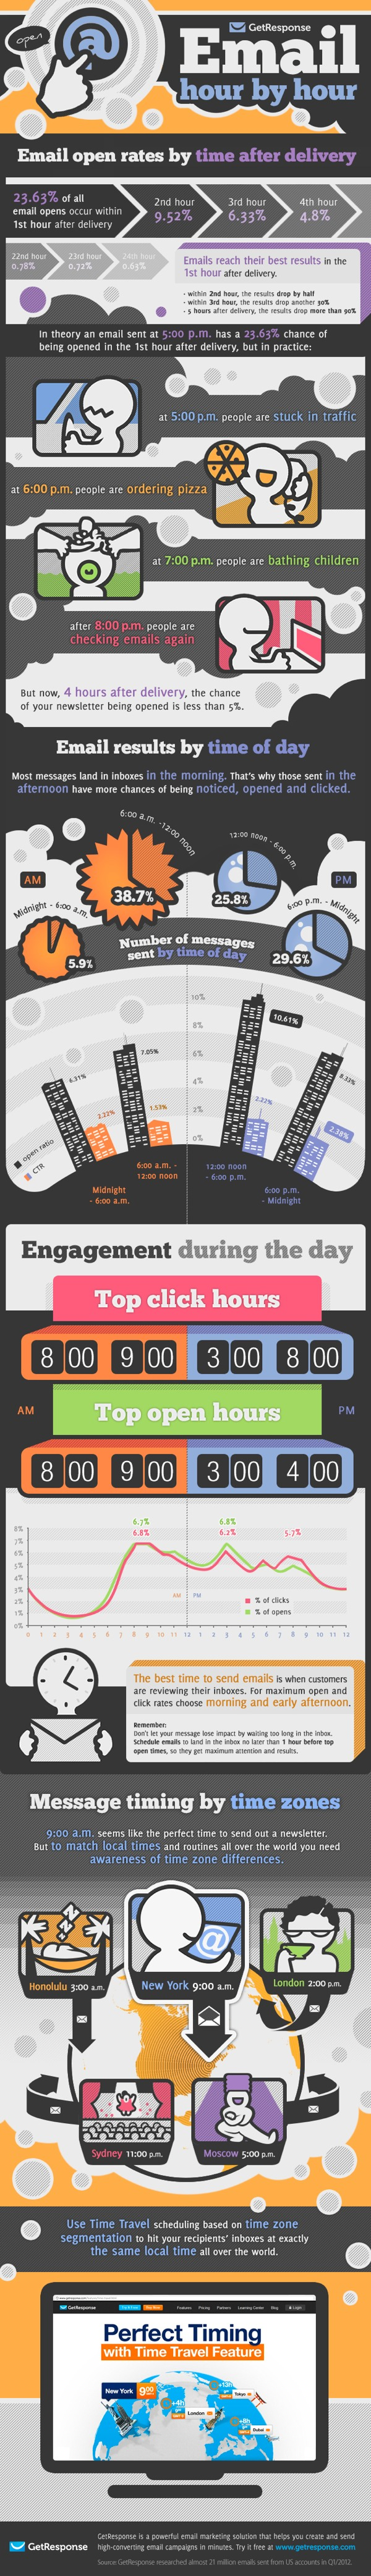 email marketing timing tips-Infographic